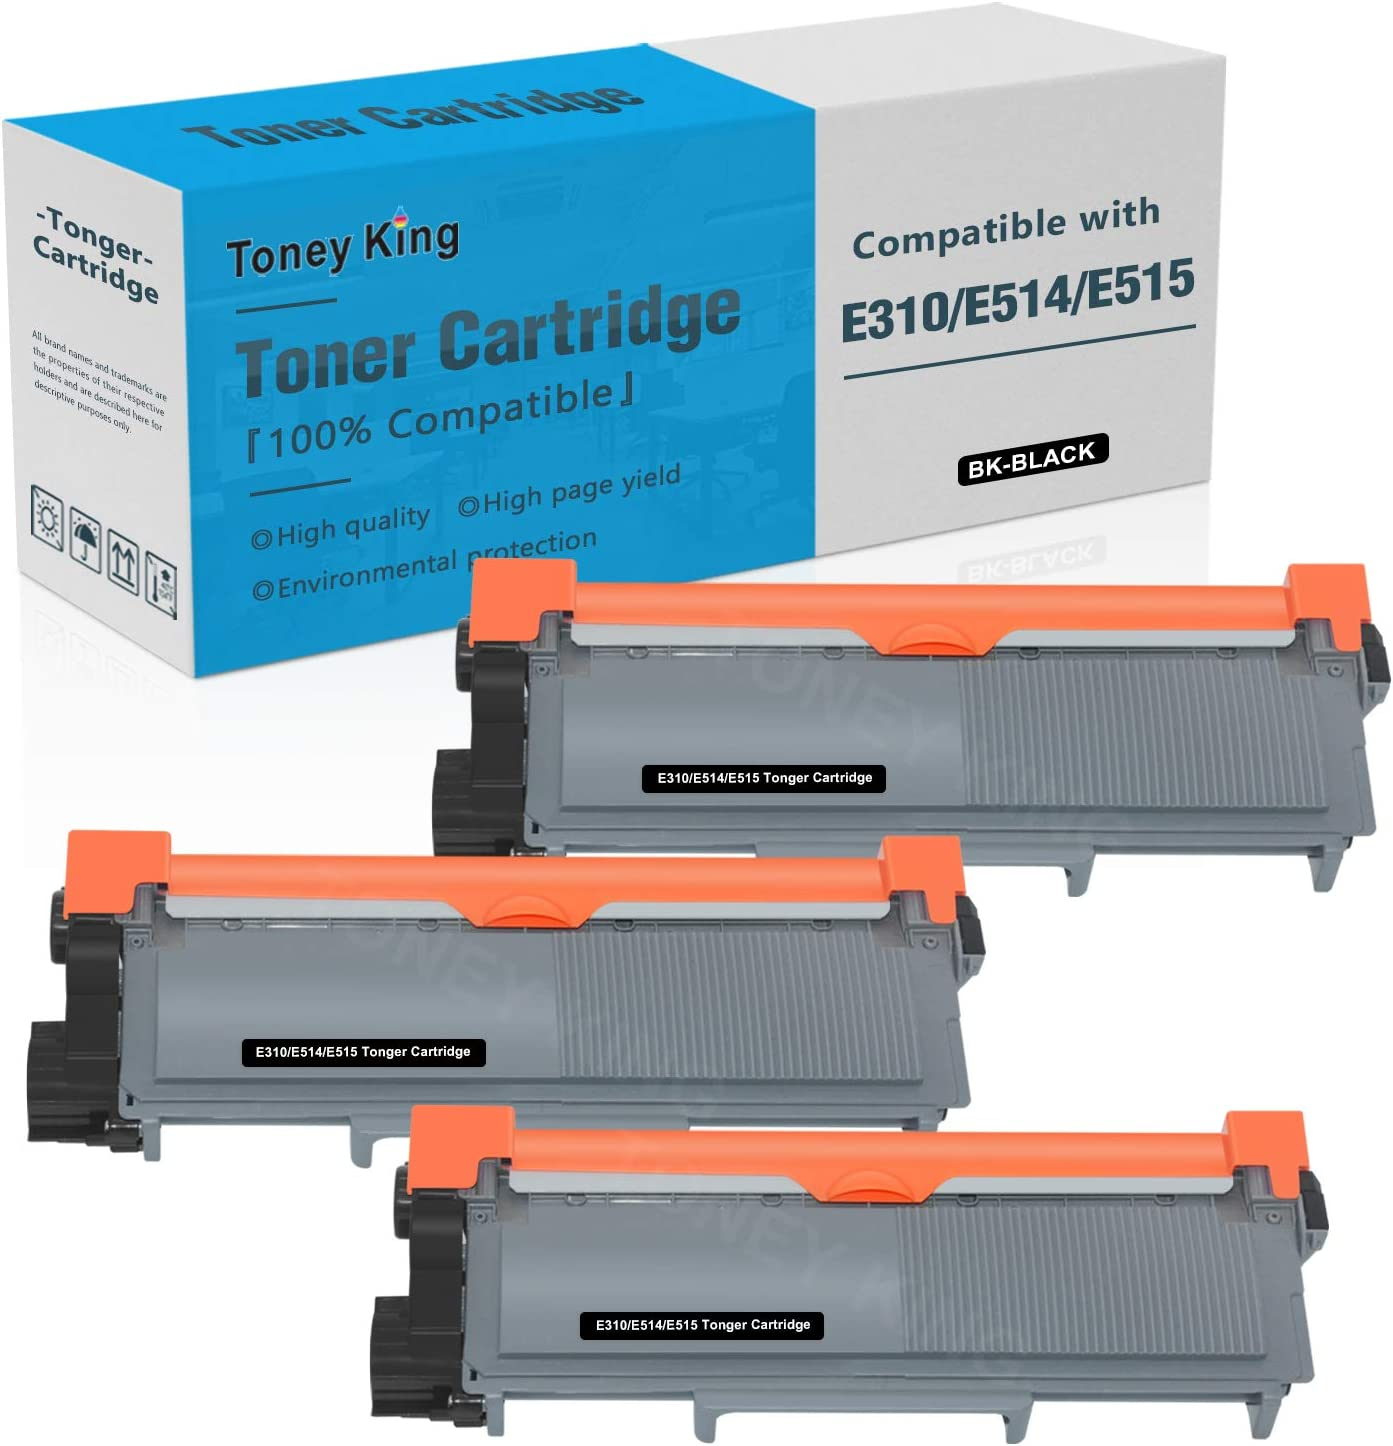 Compatible E310 E514 E515 Toner Cartridge Replacement for Dell E514dw E310dw E515dw E515dn Printer Toner Cartridges ( Dell PVTHG, 593-BBKD, P7RMX, 2,600 Page High Yields, 3PK x Black ) by Toney King